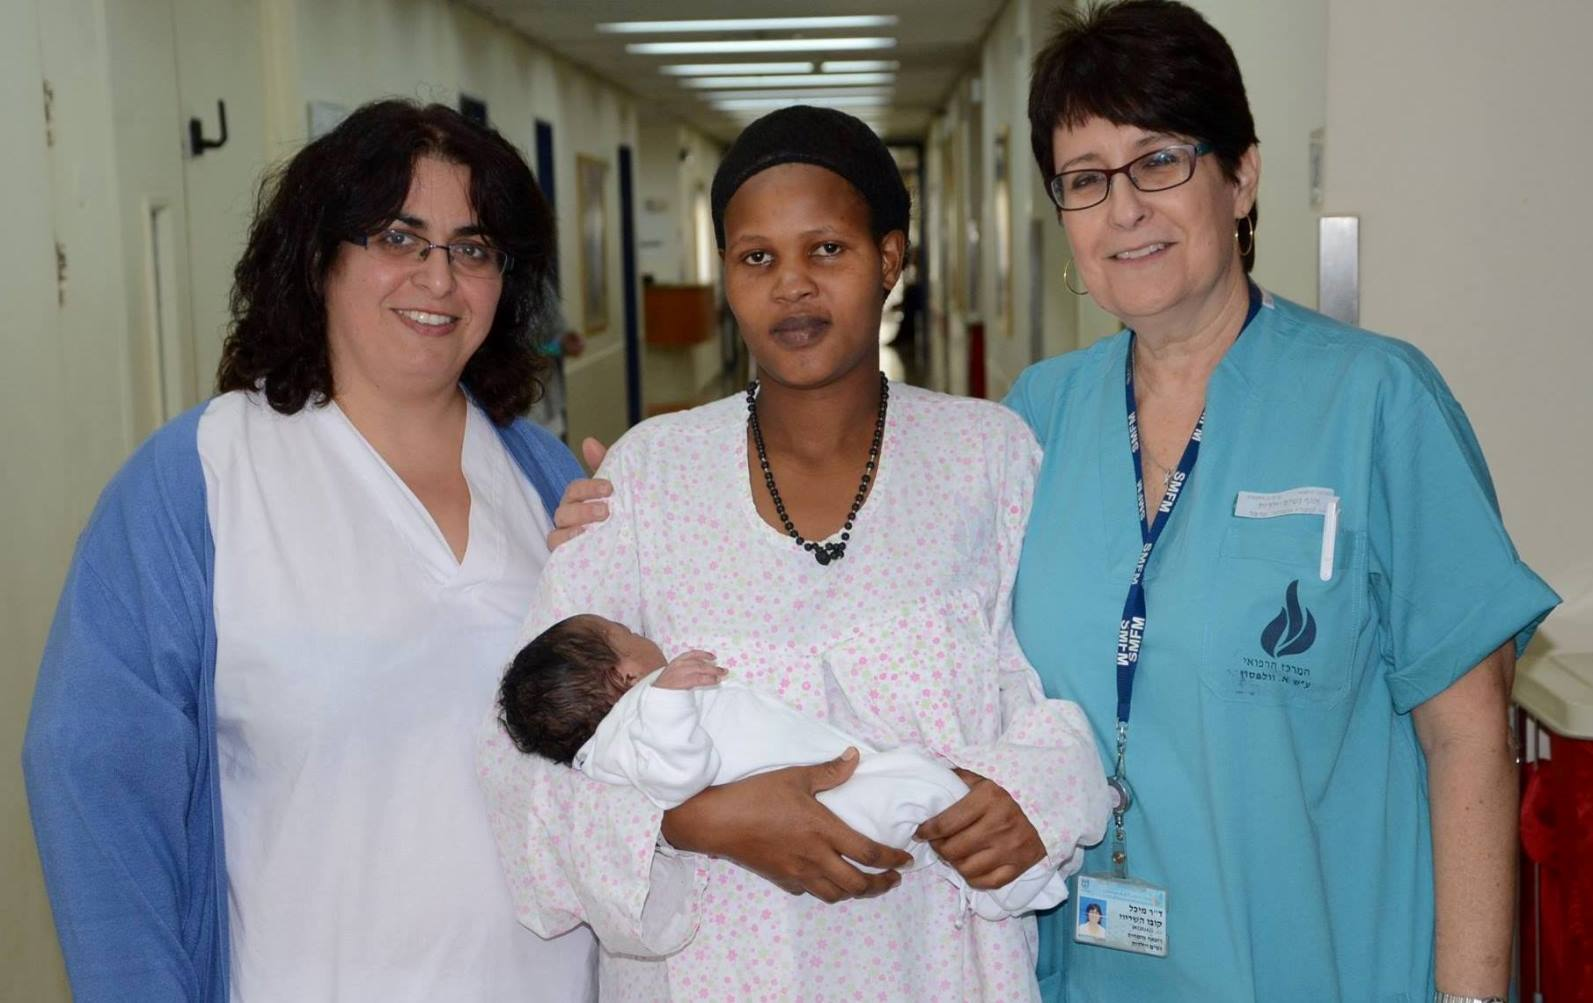 Elieth and baby Laura, flanked by nurse Limor Cooper-Sasson and Dr. Michal Kobo in the maternity department at Wolfson. Photo by Batak Nuna